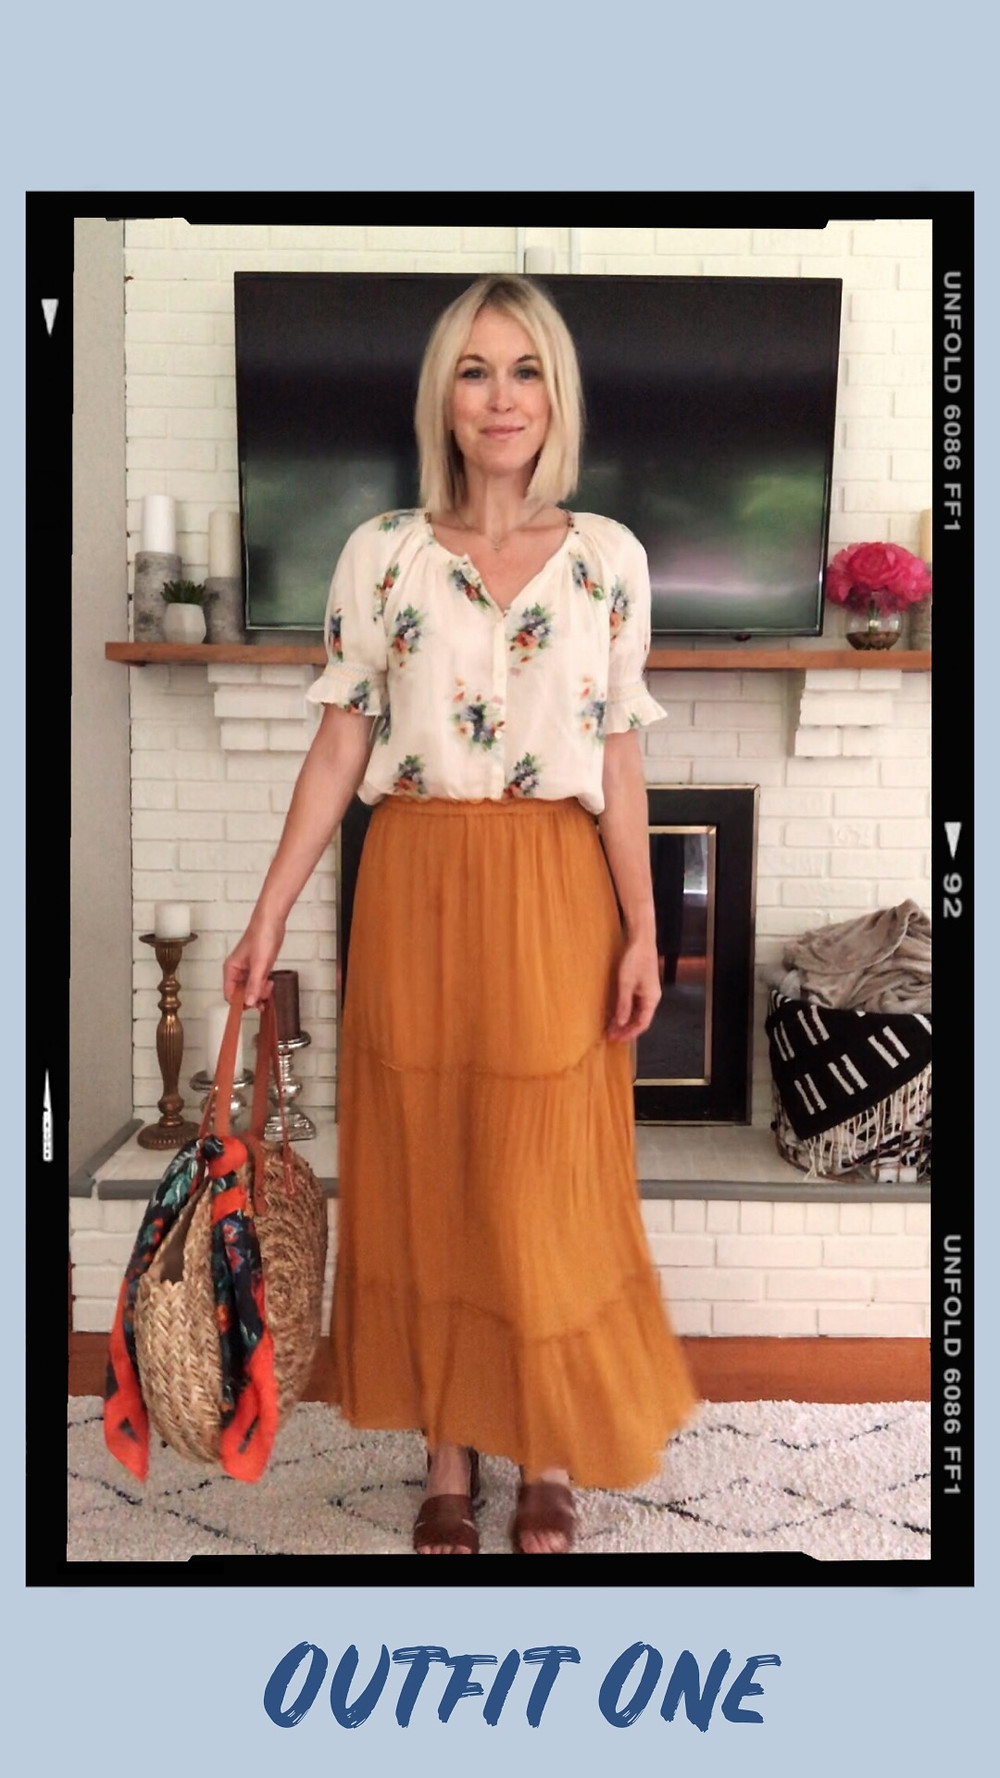 Madewell floral smocked top, yellow maxi skirt, Target round straw bag, floral scarf, summer outfit idea, capsule wardrobe, wardrobe stylist and fashion blogger